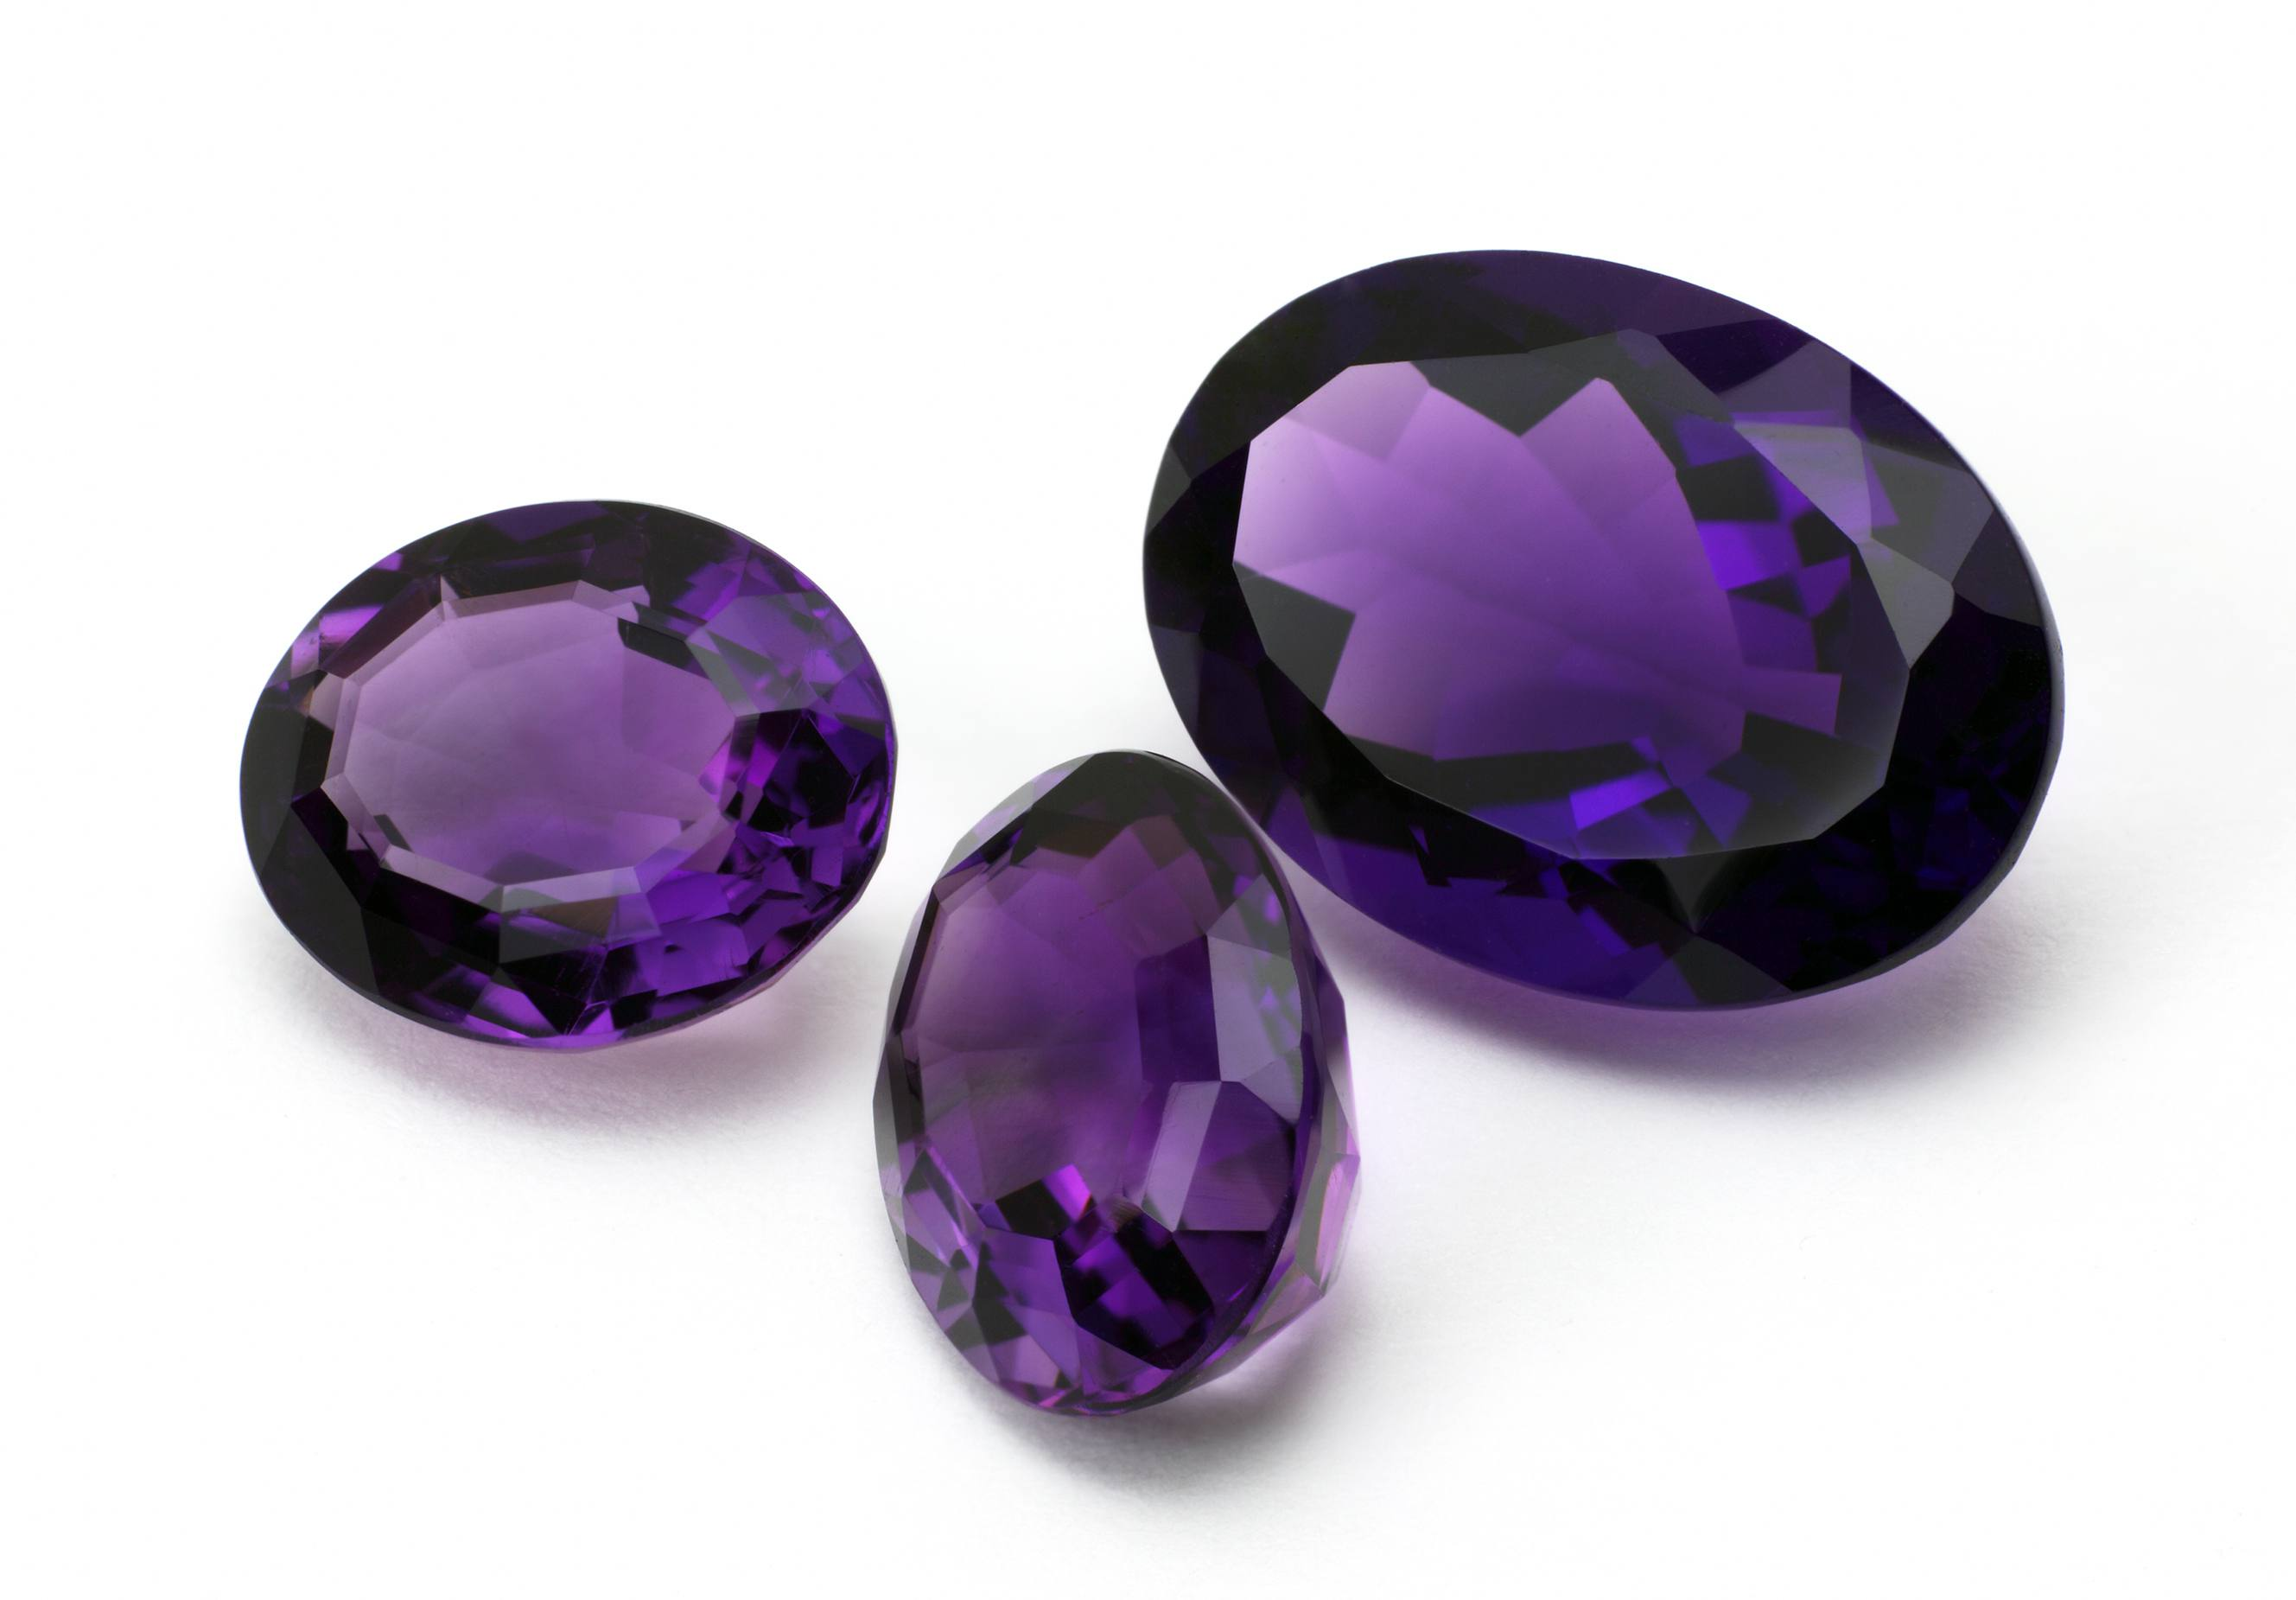 south magaliesburg wiki gemstone africa amethyst wikipedia purple color